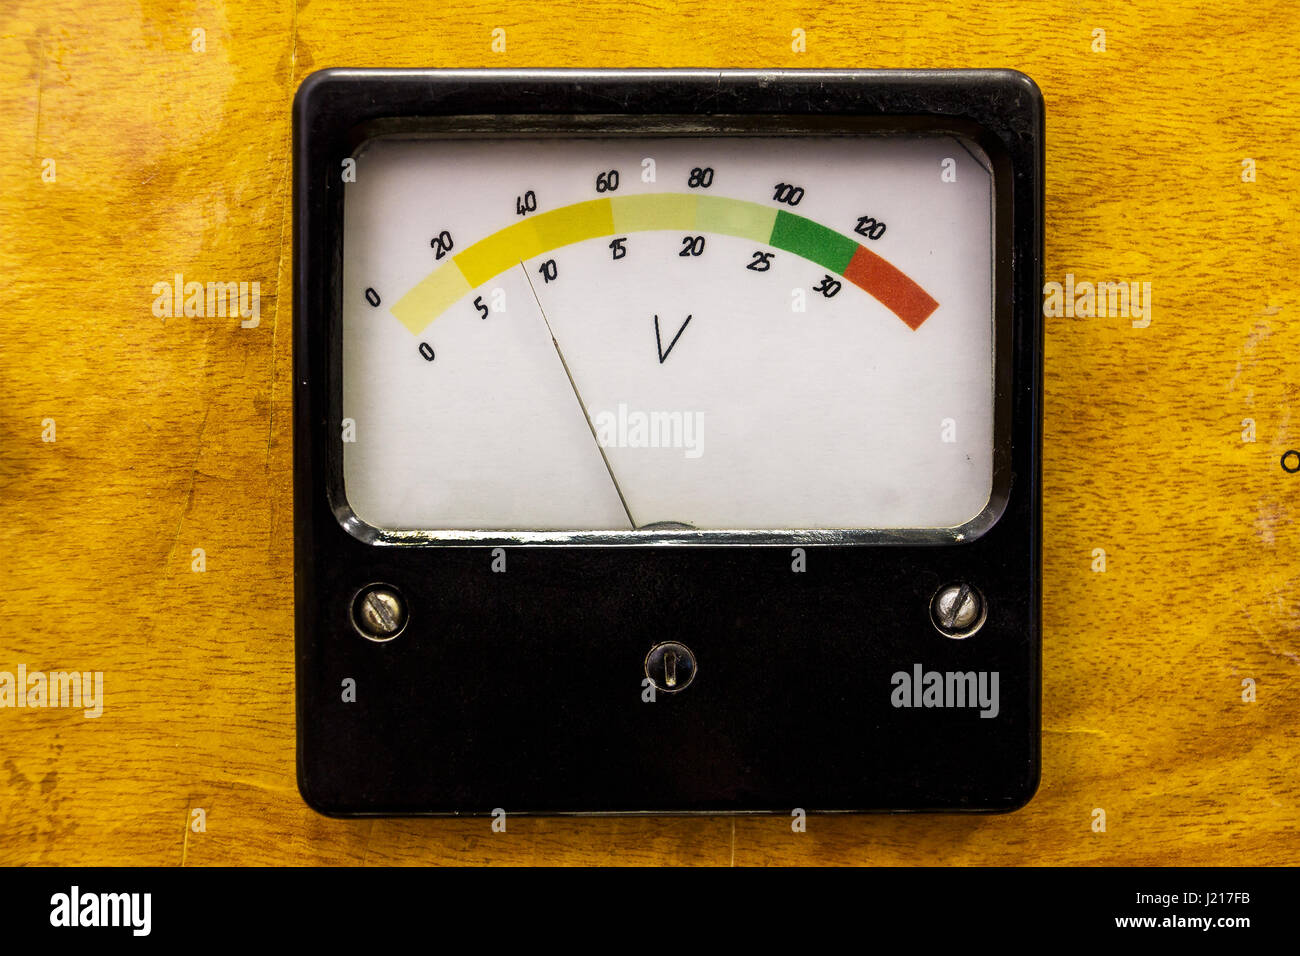 Old measuring instrument - Stock Image